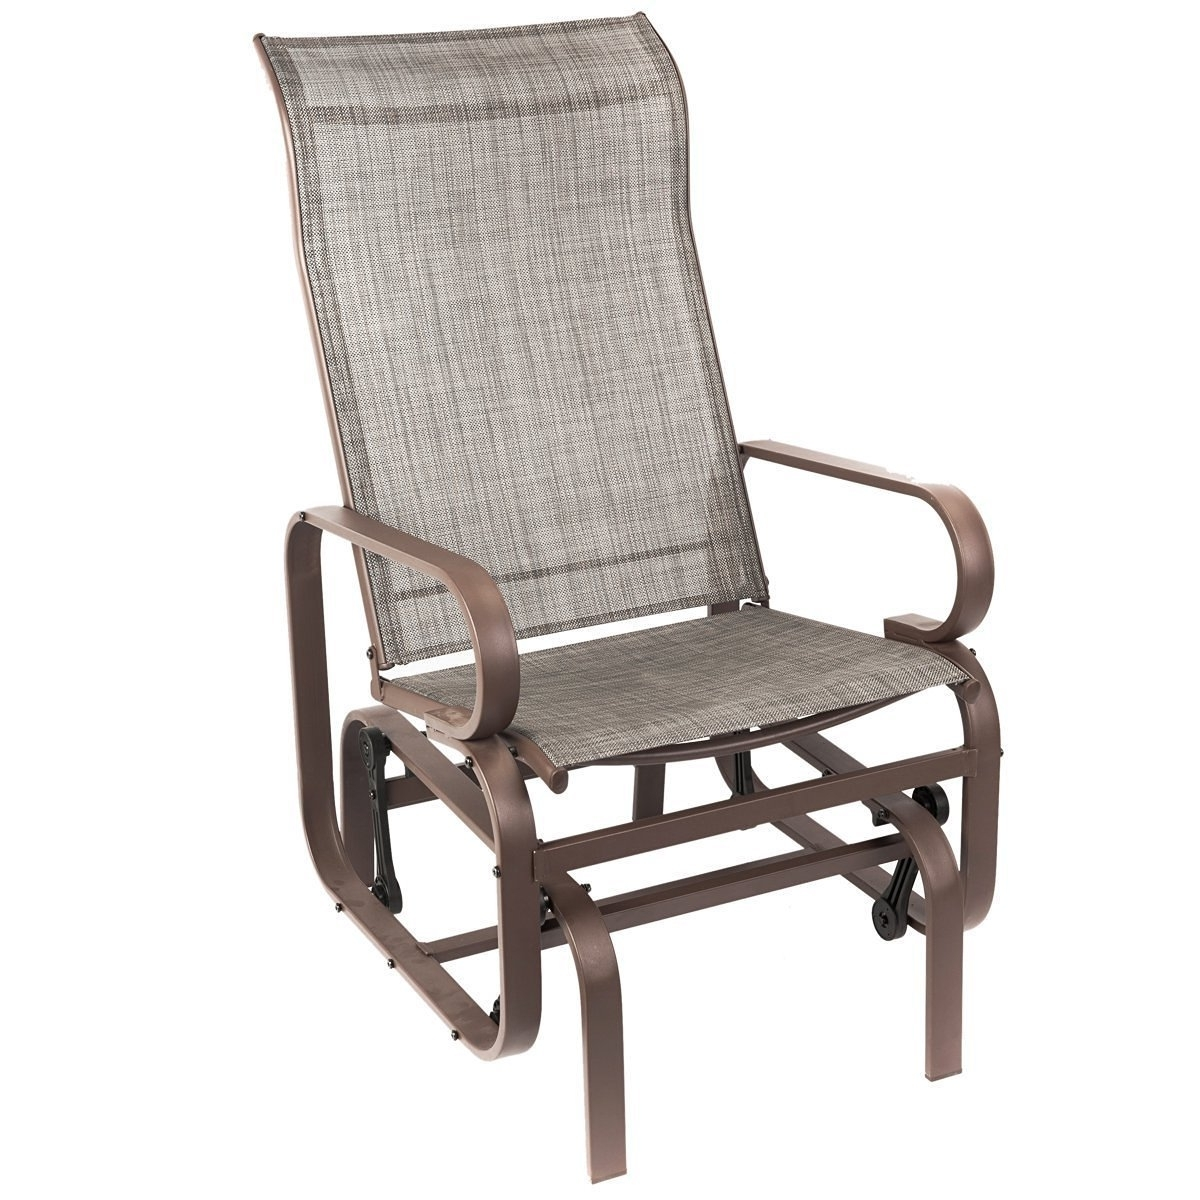 Trendy Rocking Chairs For Patio With Regard To Glider Chair For Patio – Decco.voiceoverservices (View 2 of 15)